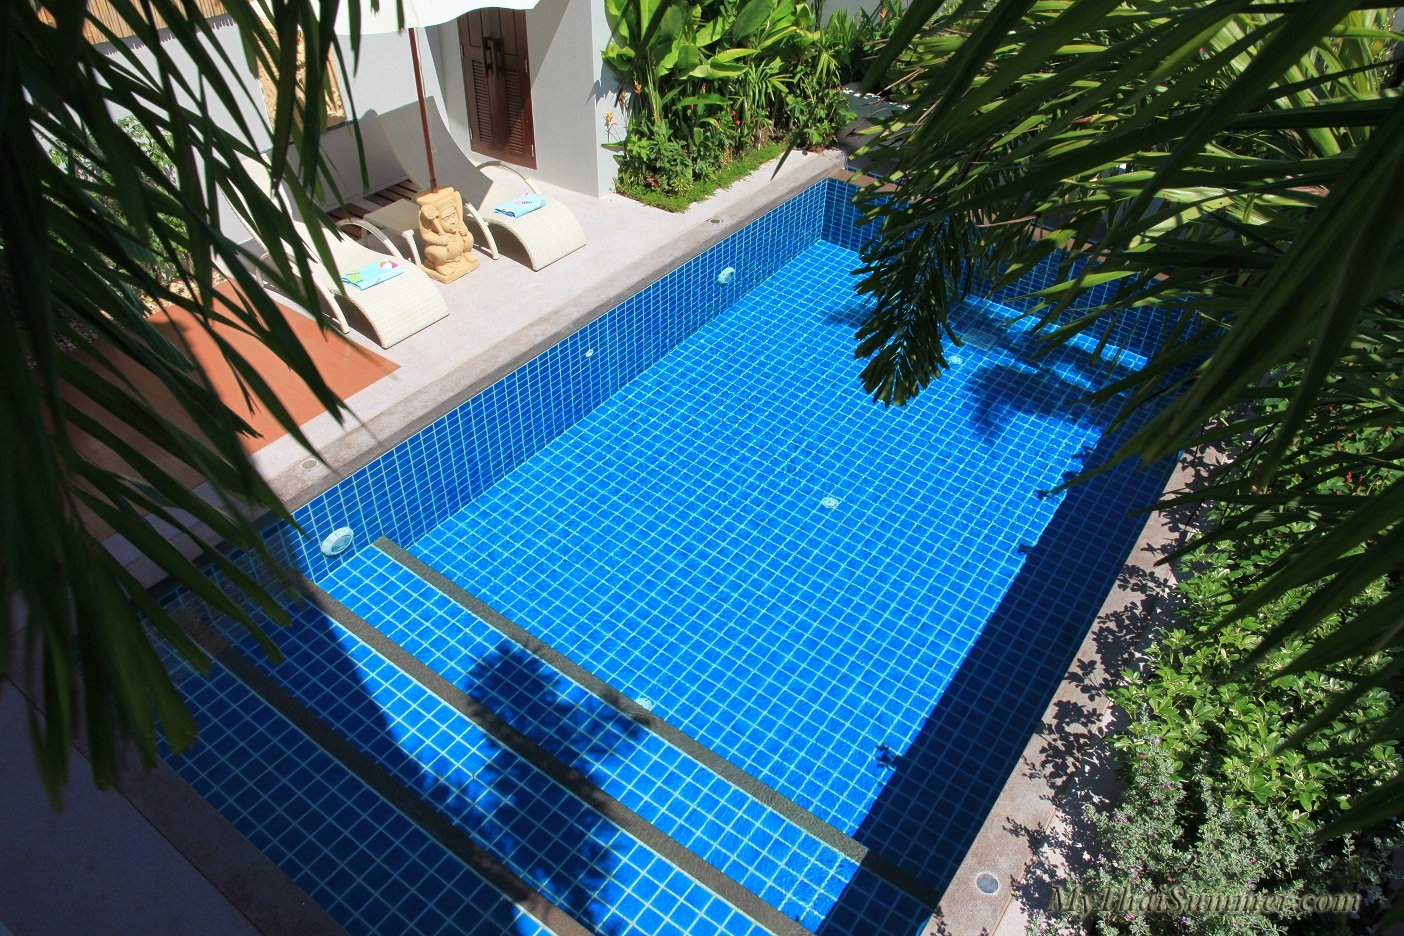 Nice 3 bedroom villa in 5 minutes walk to Ban Tai beach (1 bedroom occupancy)